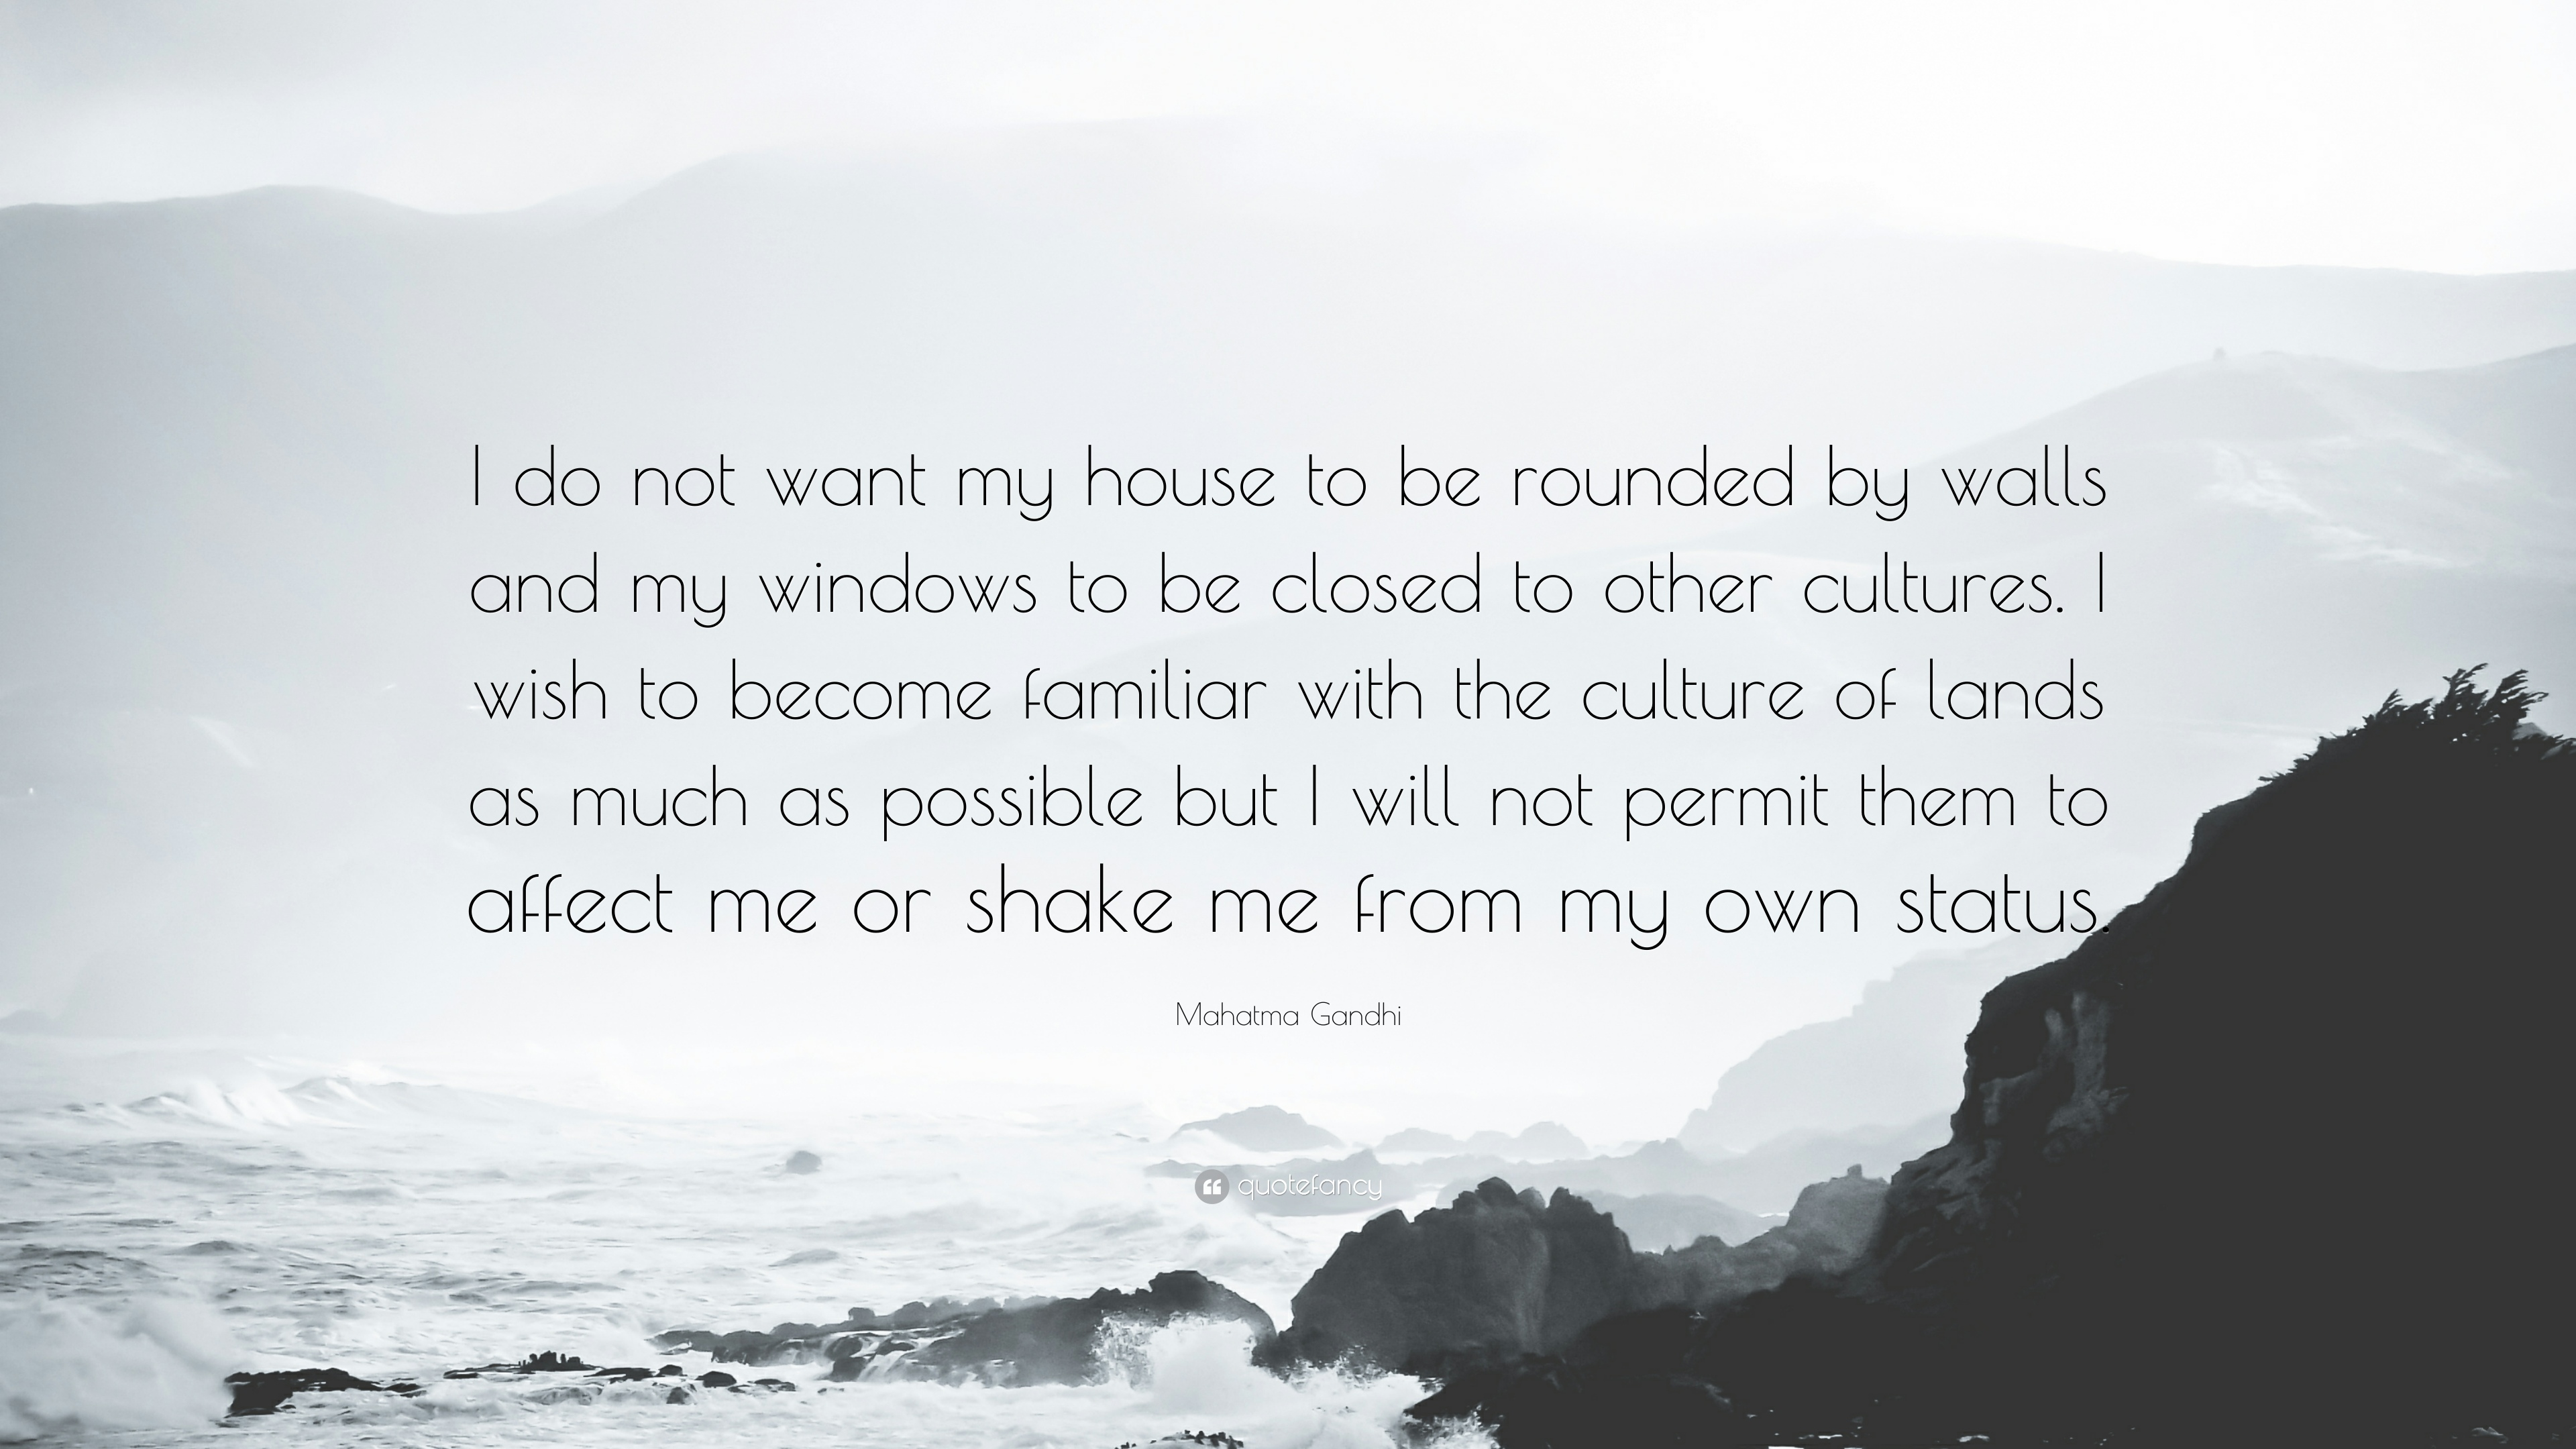 Mahatma Gandhi Quote I Do Not Want My House To Be Rounded By Walls And My Windows To Be Closed To Other Cultures I Wish To Become Familiar W 10 Wallpapers Quotefancy